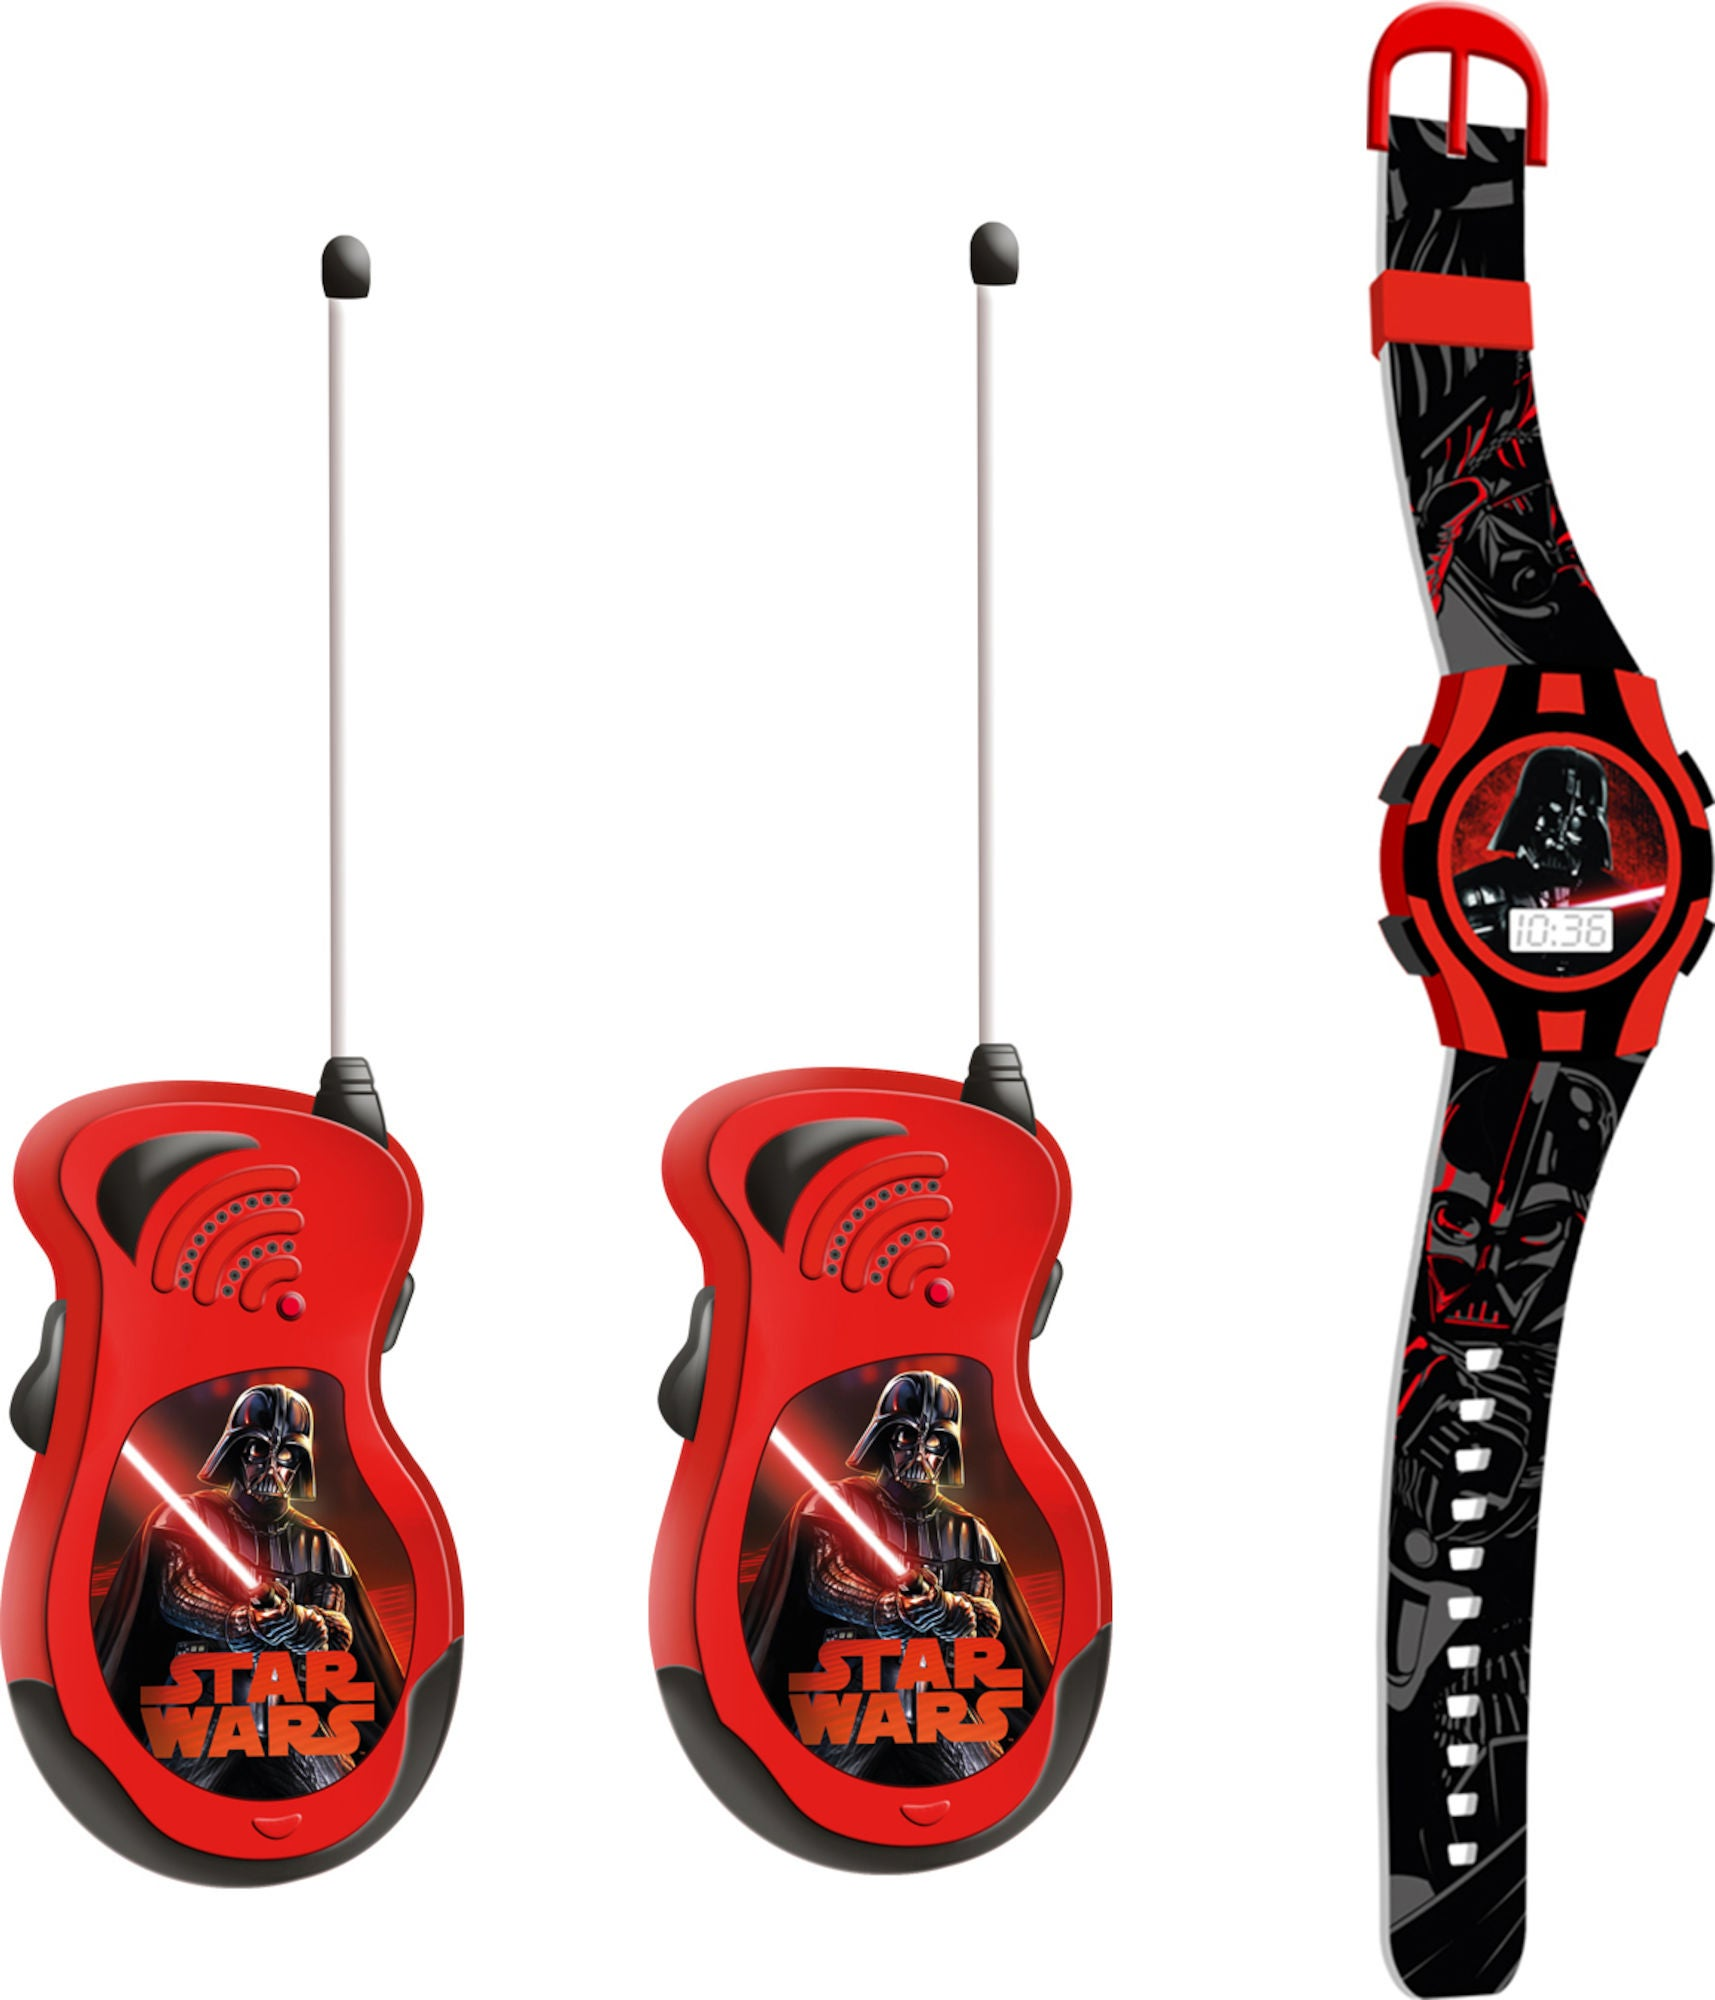 Star Wars Walkie Talkies Og Klokke